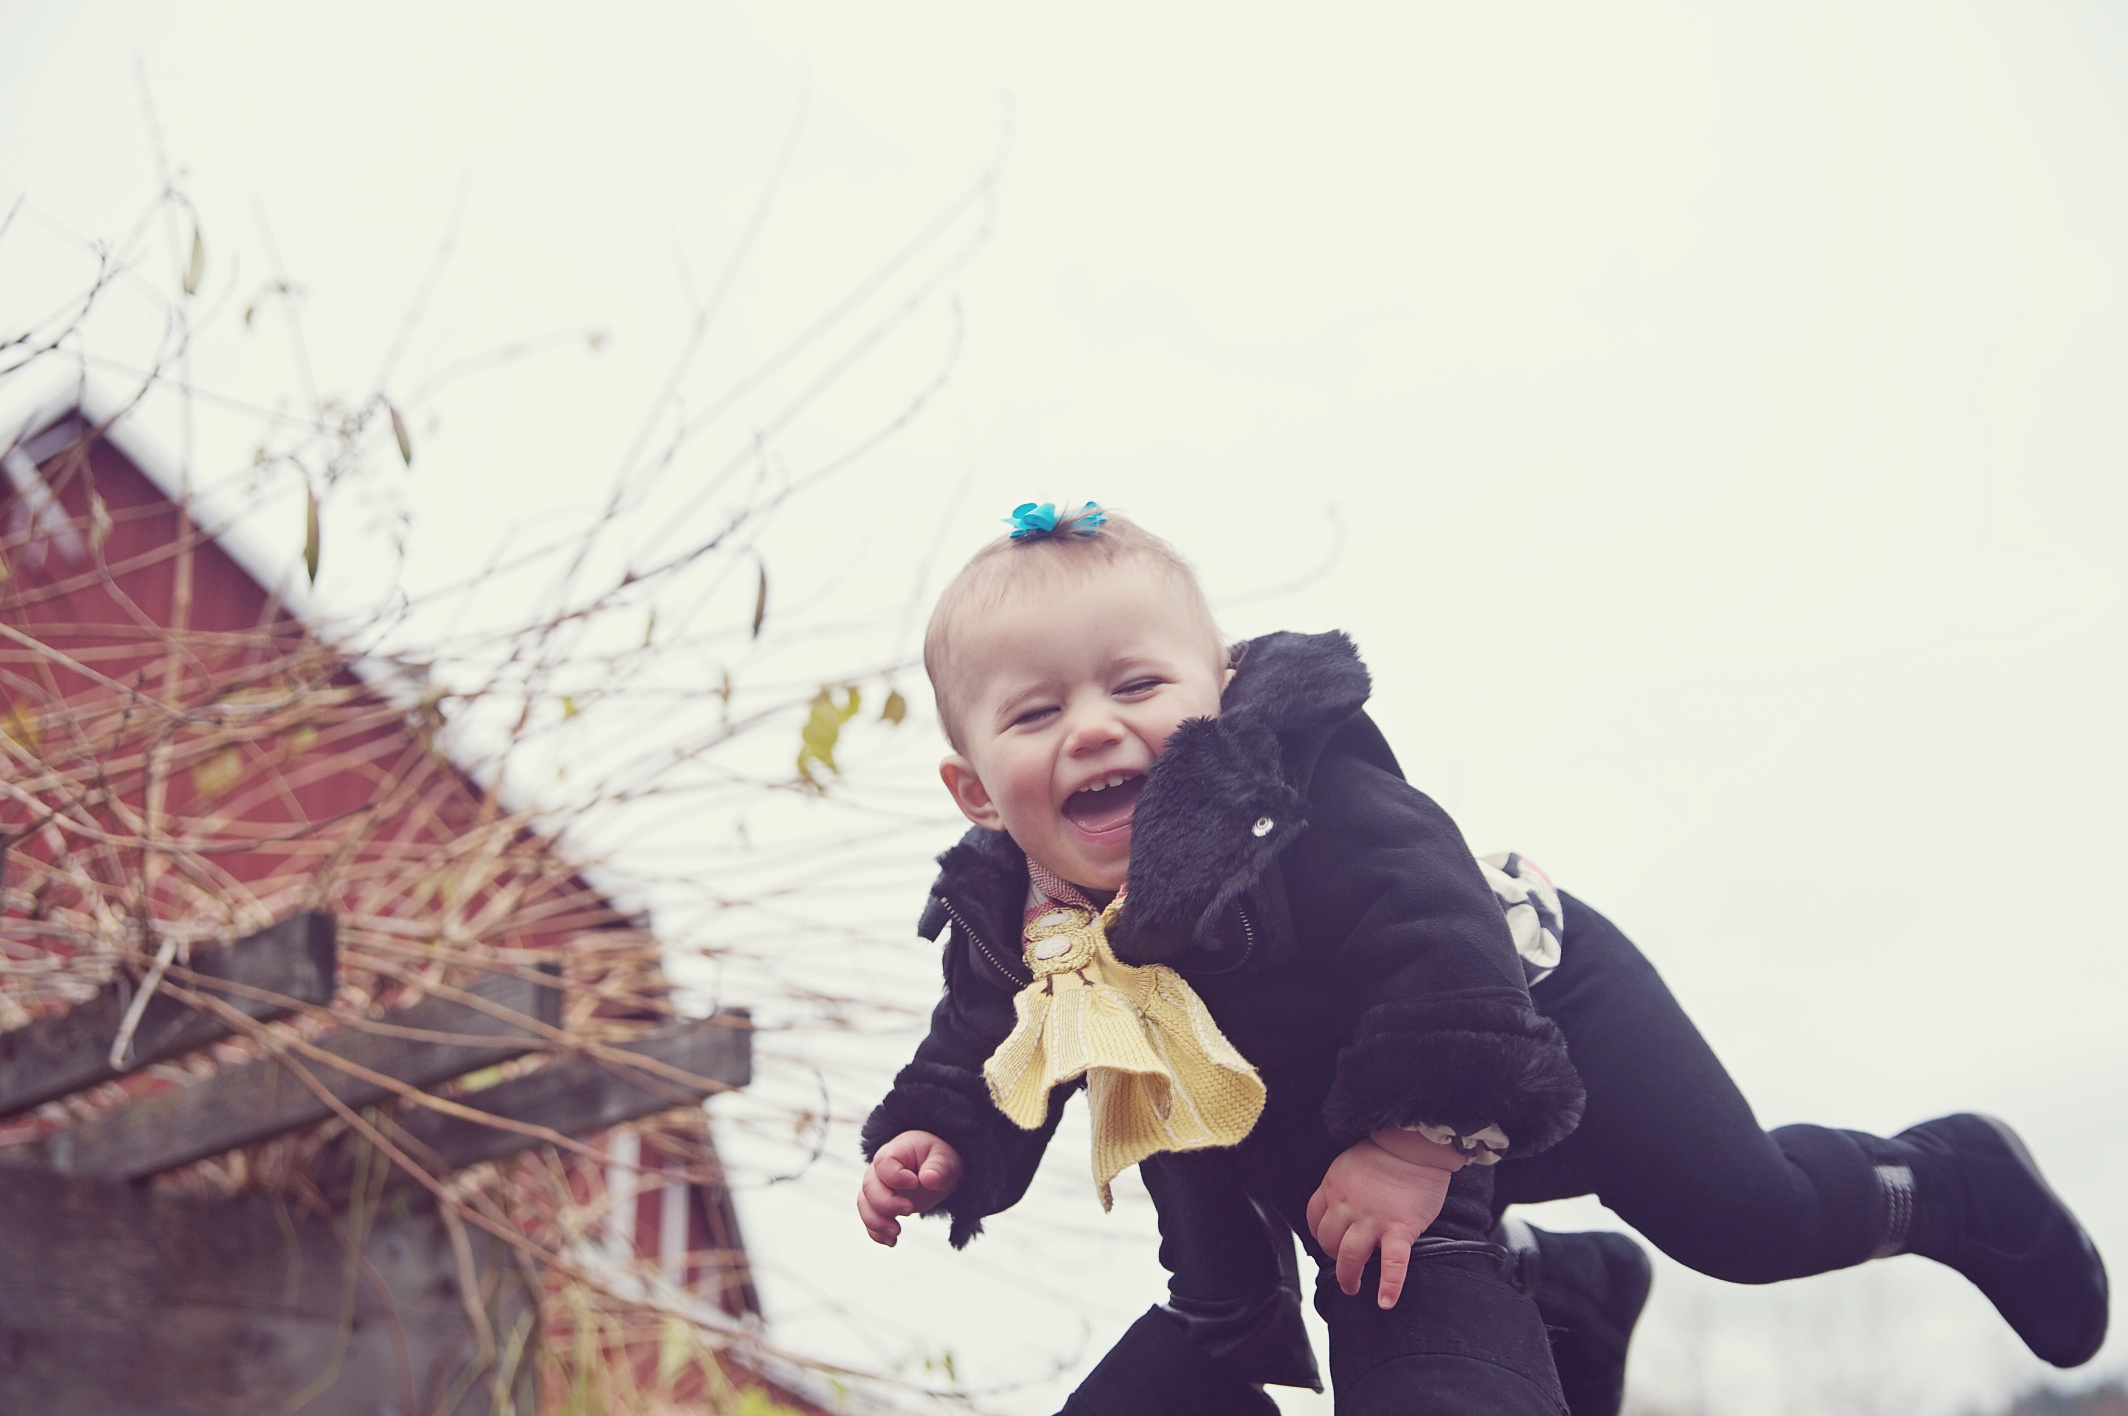 laughing_baby_in_air_Issaquah_Pickering_barn.jpg